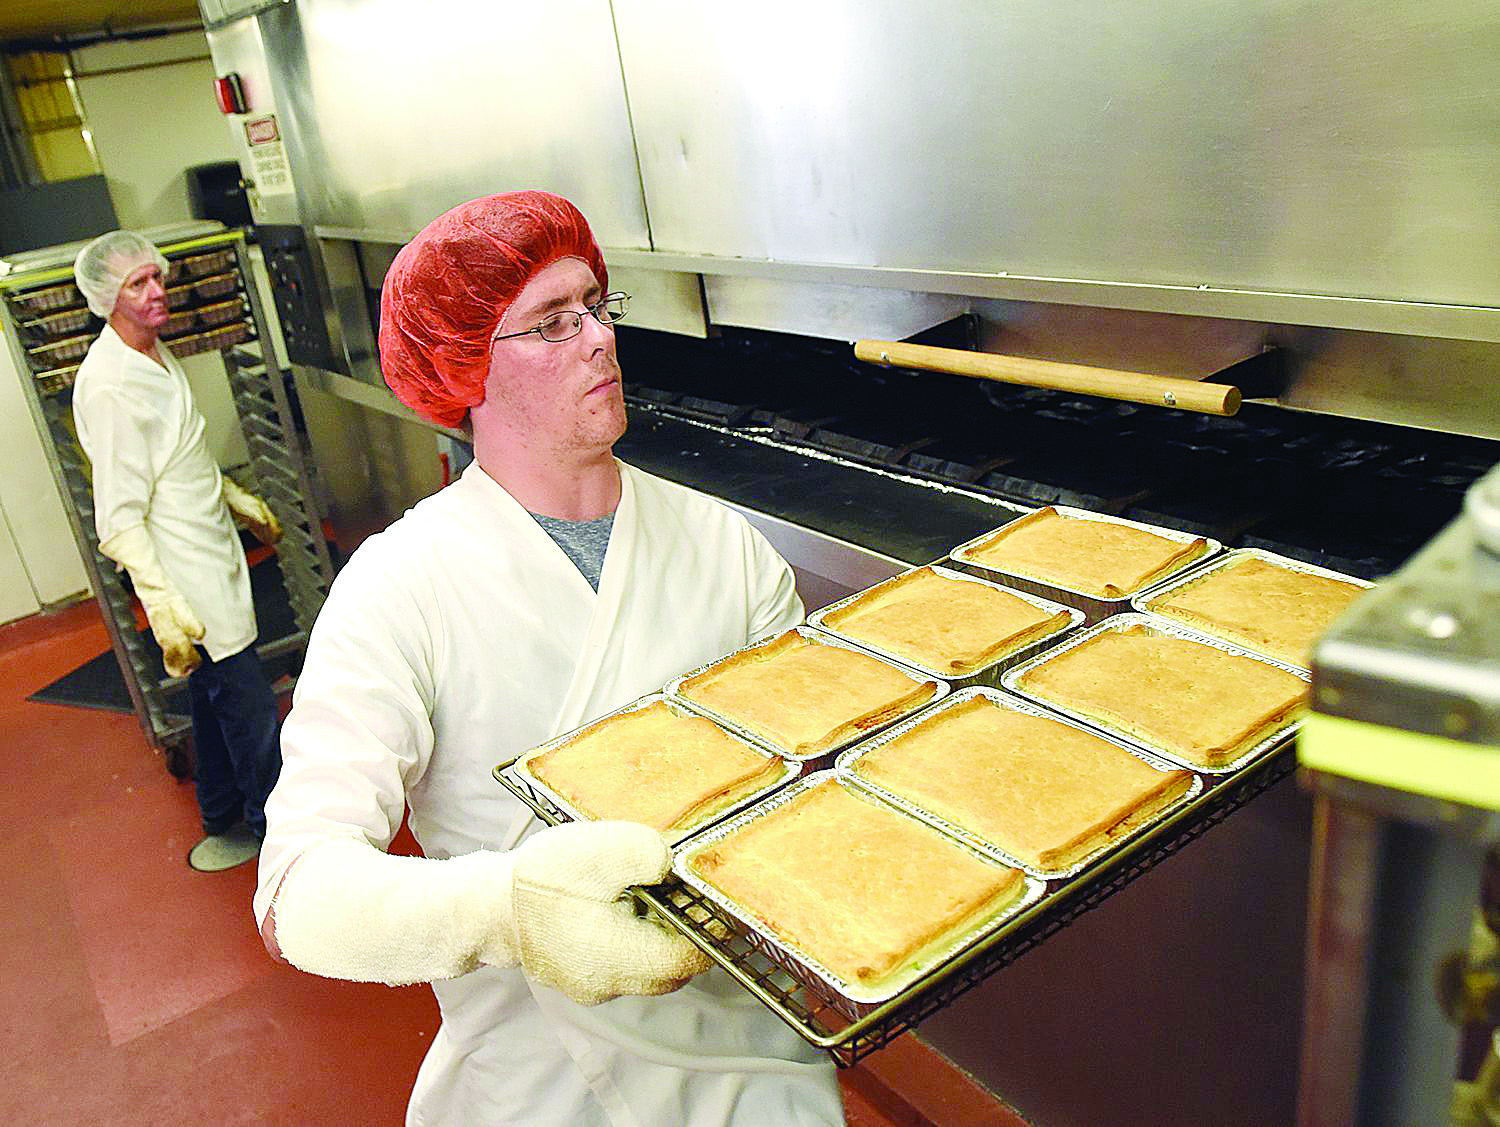 9/8/15--Adam Miller of Manchester removes a tray of chicken pies from the oven at Mrs. Budd's in on Tuesday. DAVID LANE/UNION LEADER